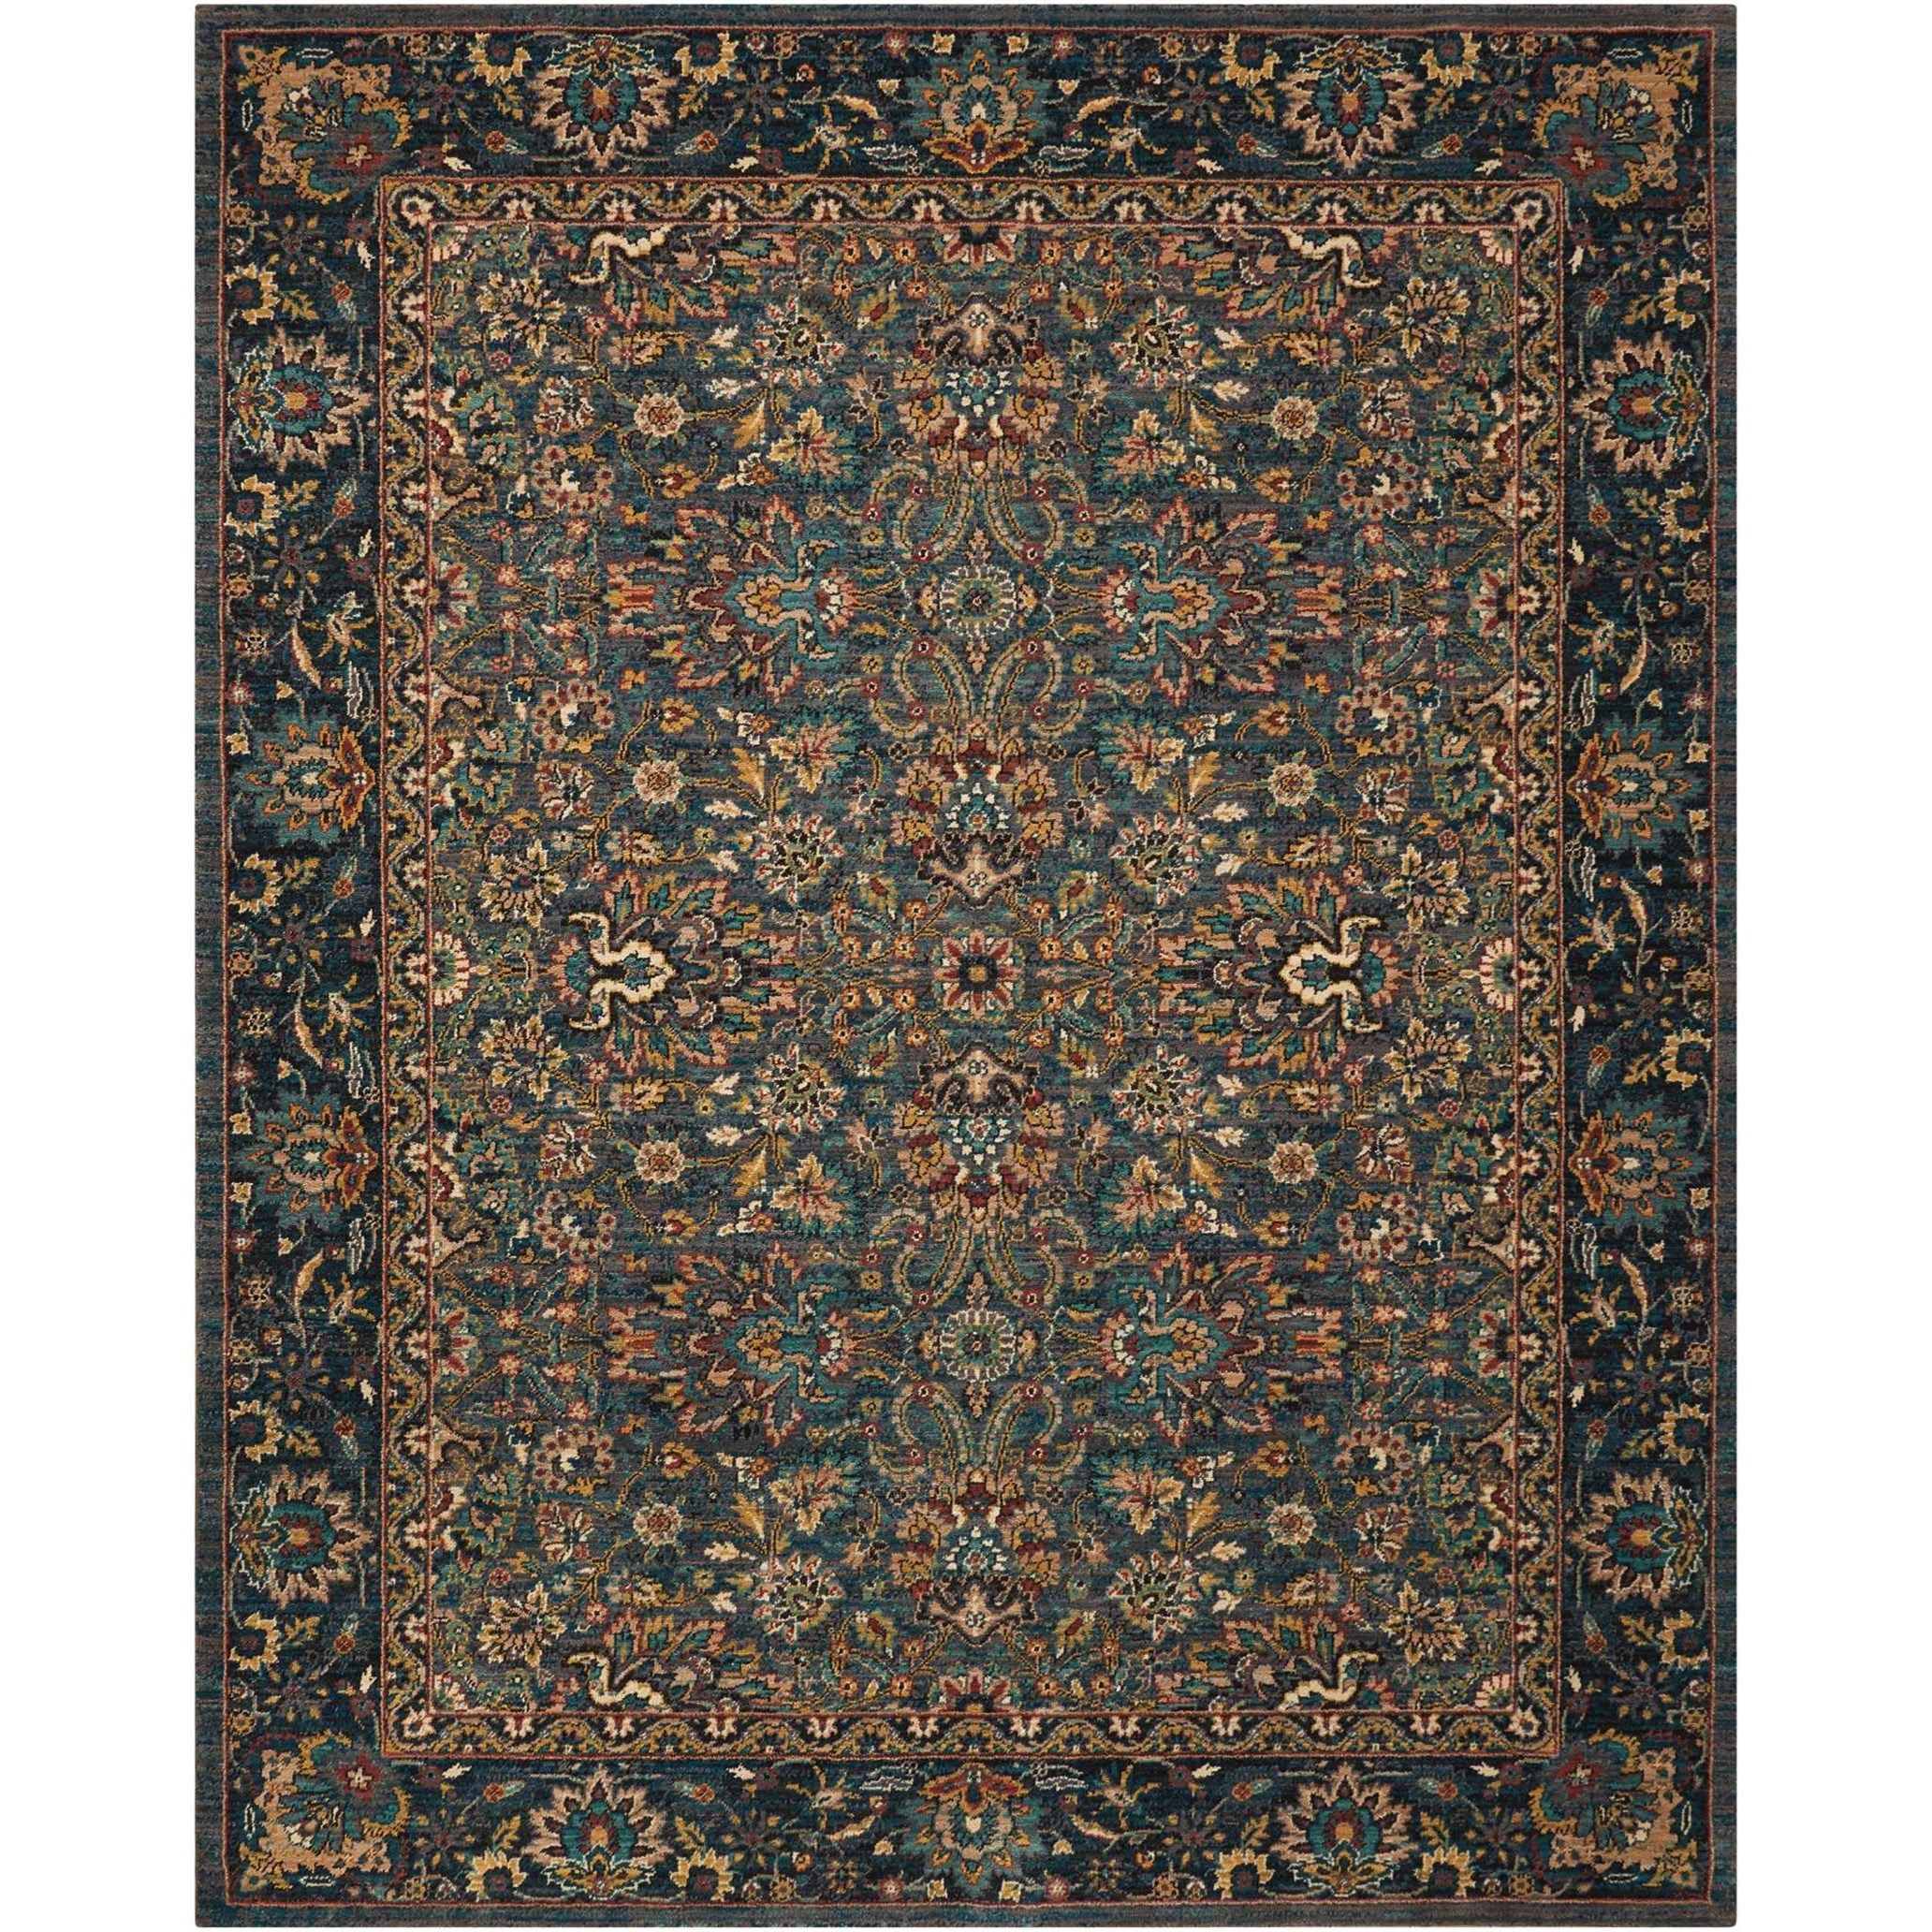 Nourison 2020 4' X 6' Steel Rug by Nourison at Home Collections Furniture